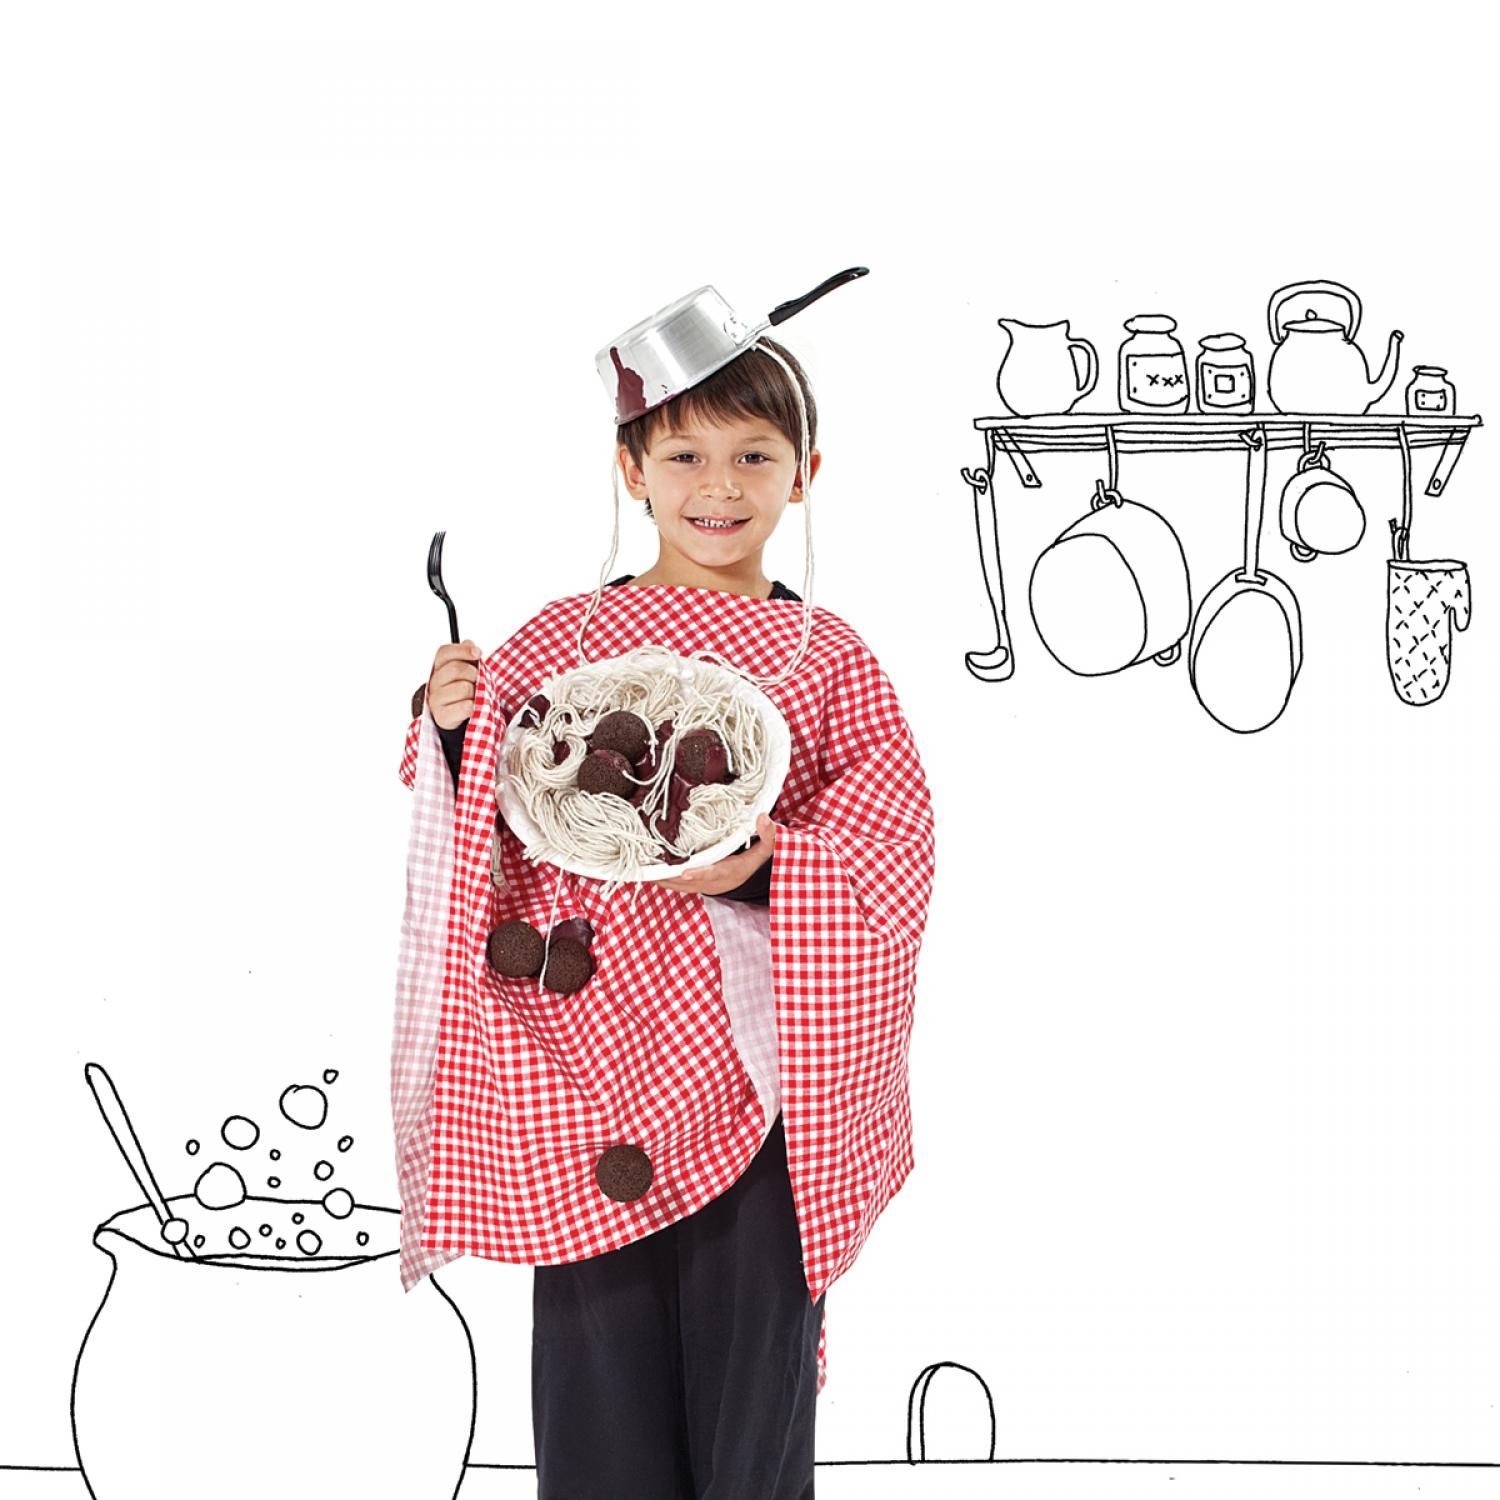 35 easy homemade halloween costumes for kids - Halloween Costume Ideas For Women Cheap And Easy